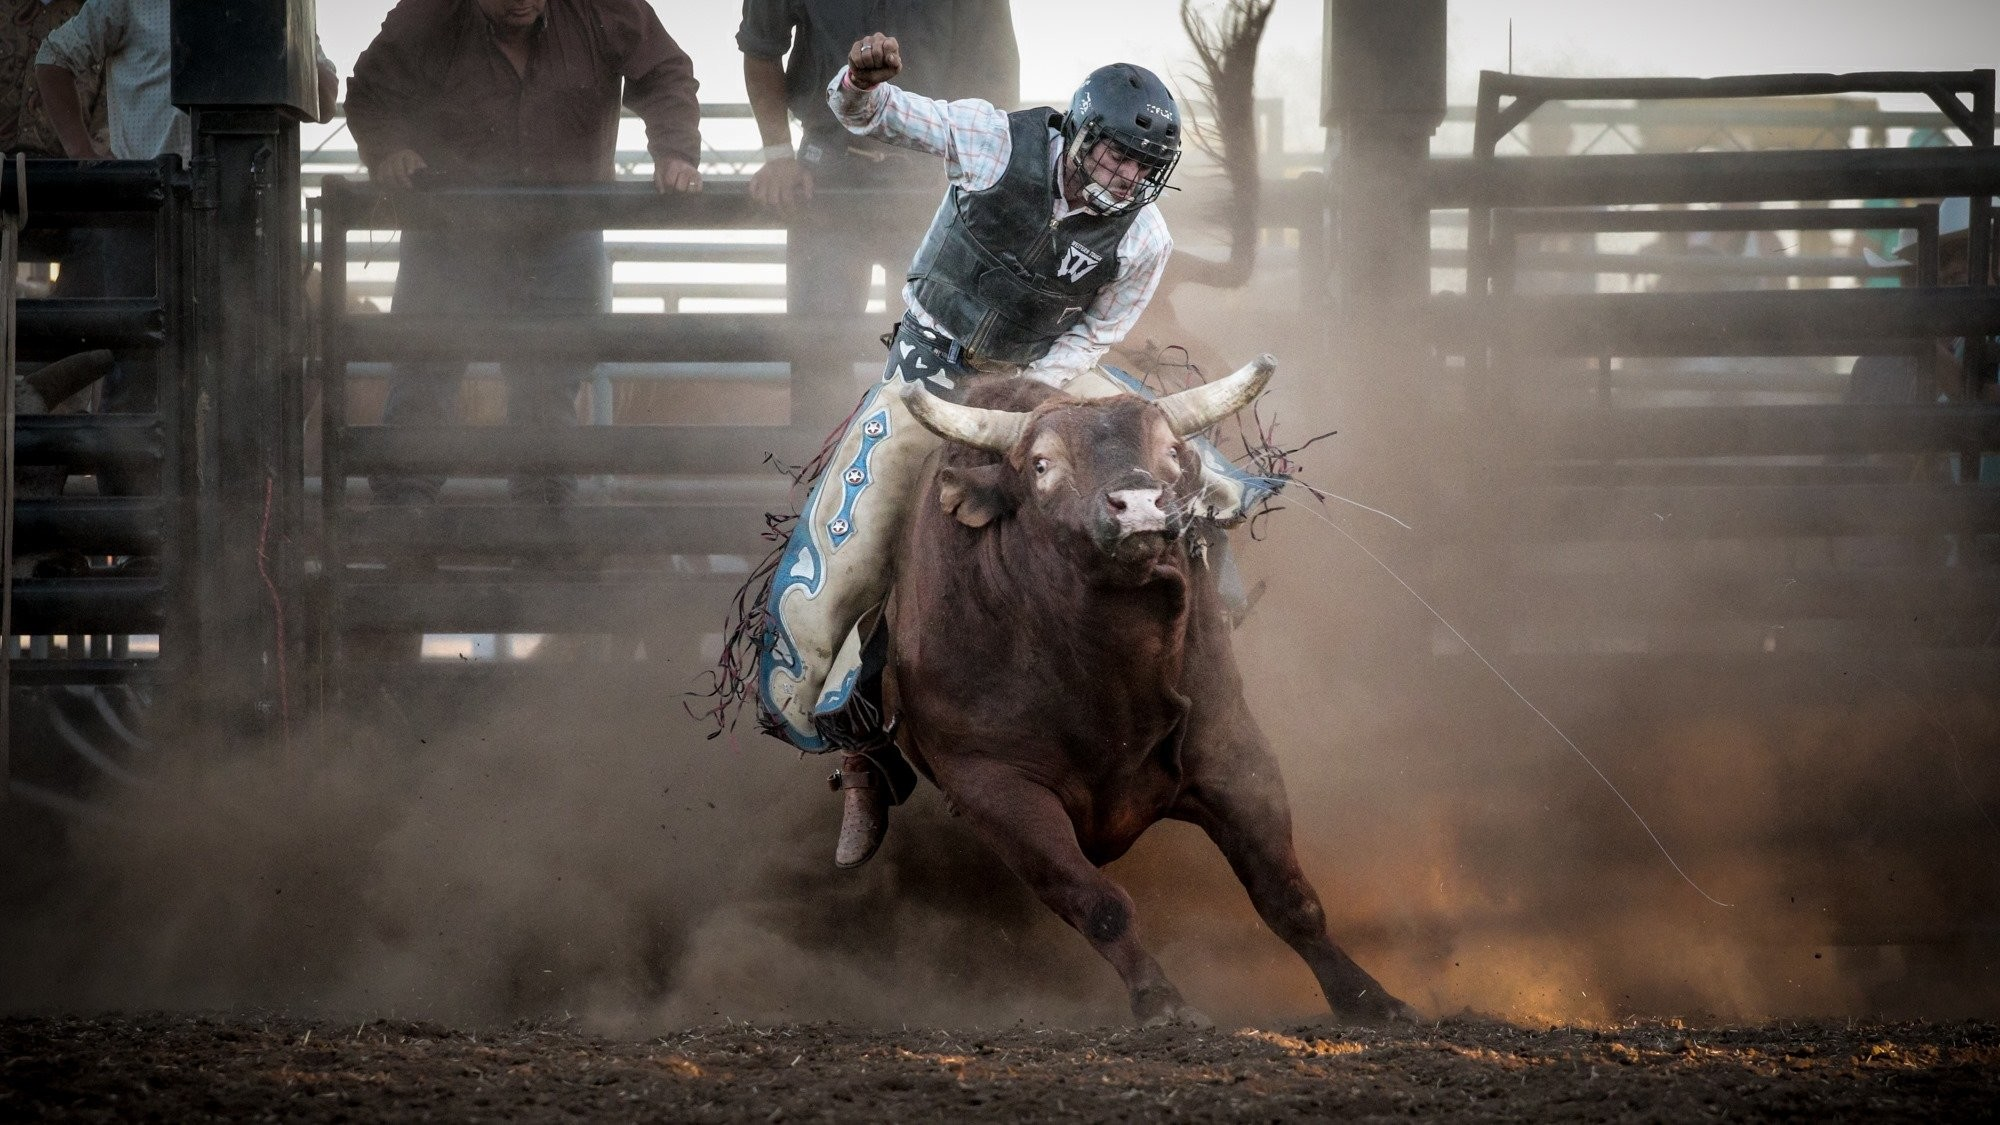 2000x1125 BULL RIDING bullrider cowboy western cow extreme bull rodeo wallpaper |   | 823824 | WallpaperUP